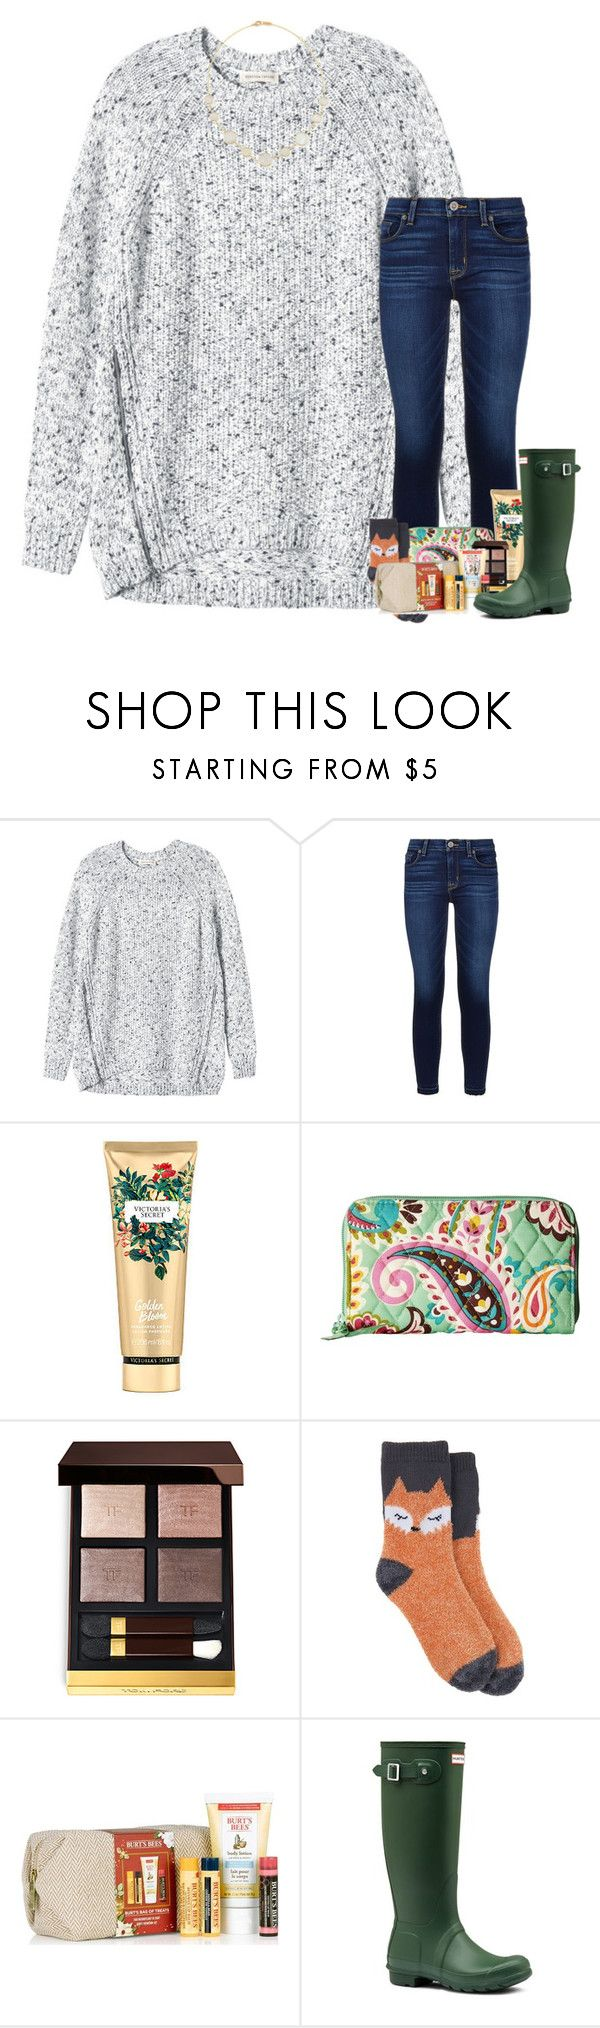 """finally watching wonder woman lol"" by classyandsassyabby ❤ liked on Polyvore featuring Rebecca Taylor, Hudson, Victoria's Secret, Vera Bradley, Tom Ford, Burt's Bees, Hunter and Ippolita"